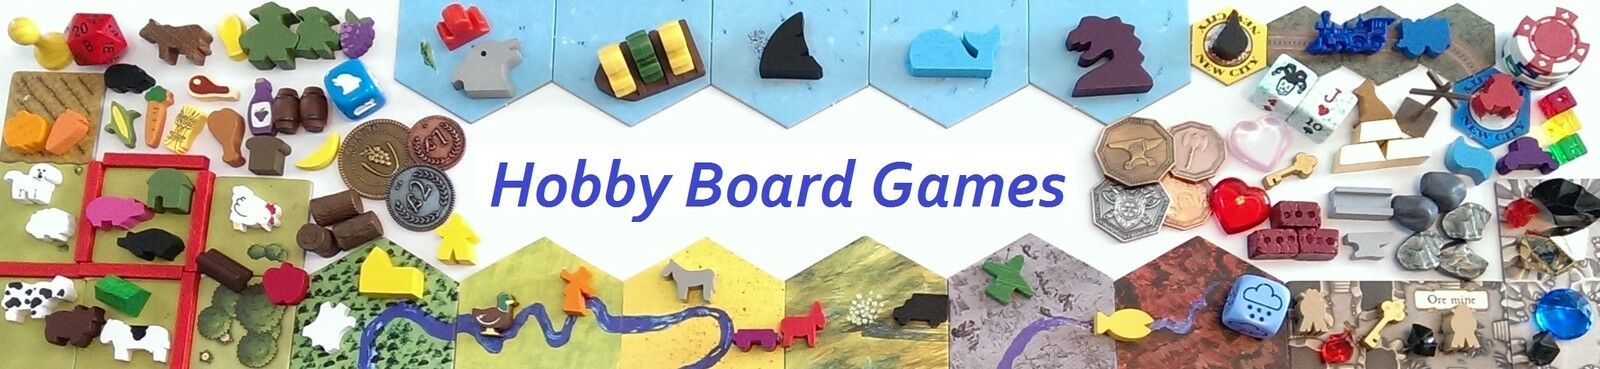 Hobby Board Games